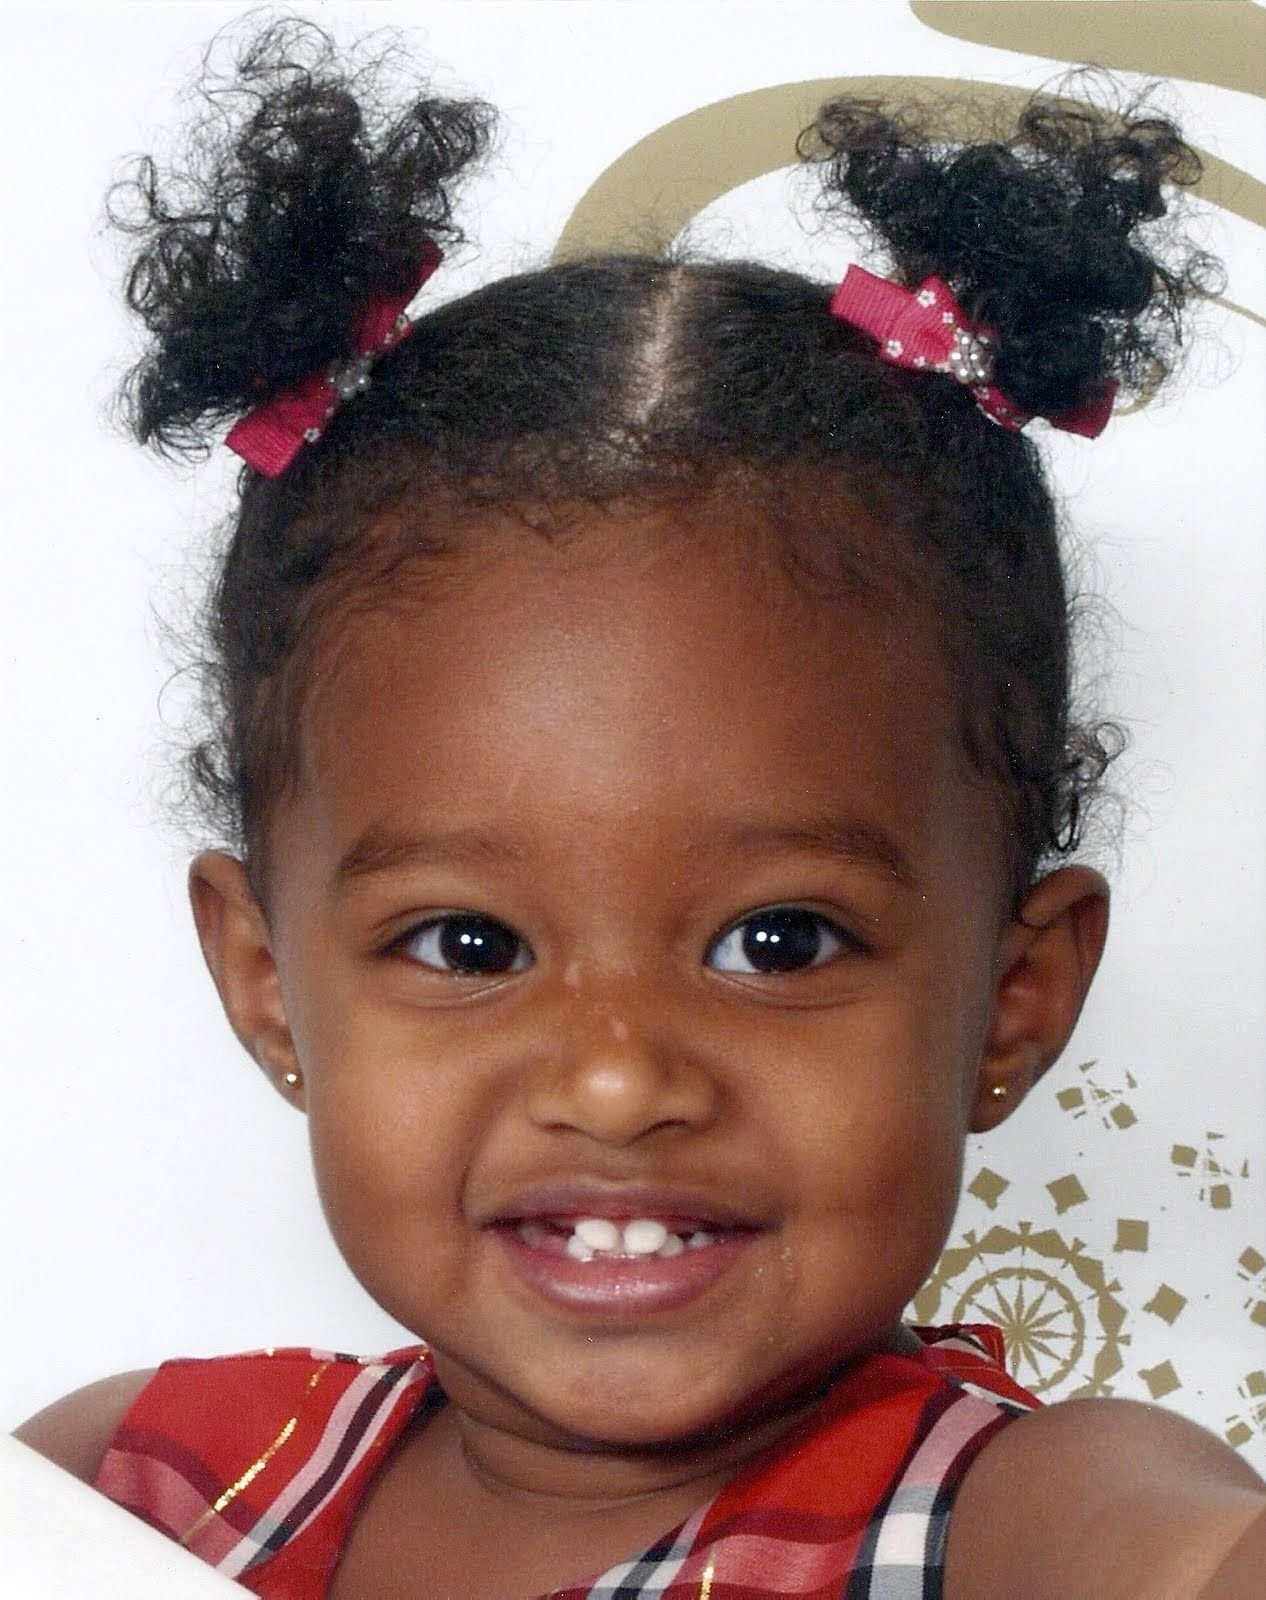 New 1 Year Old Black Baby Girl Hairstyles All American Ideas With Pictures Original 1024 x 768